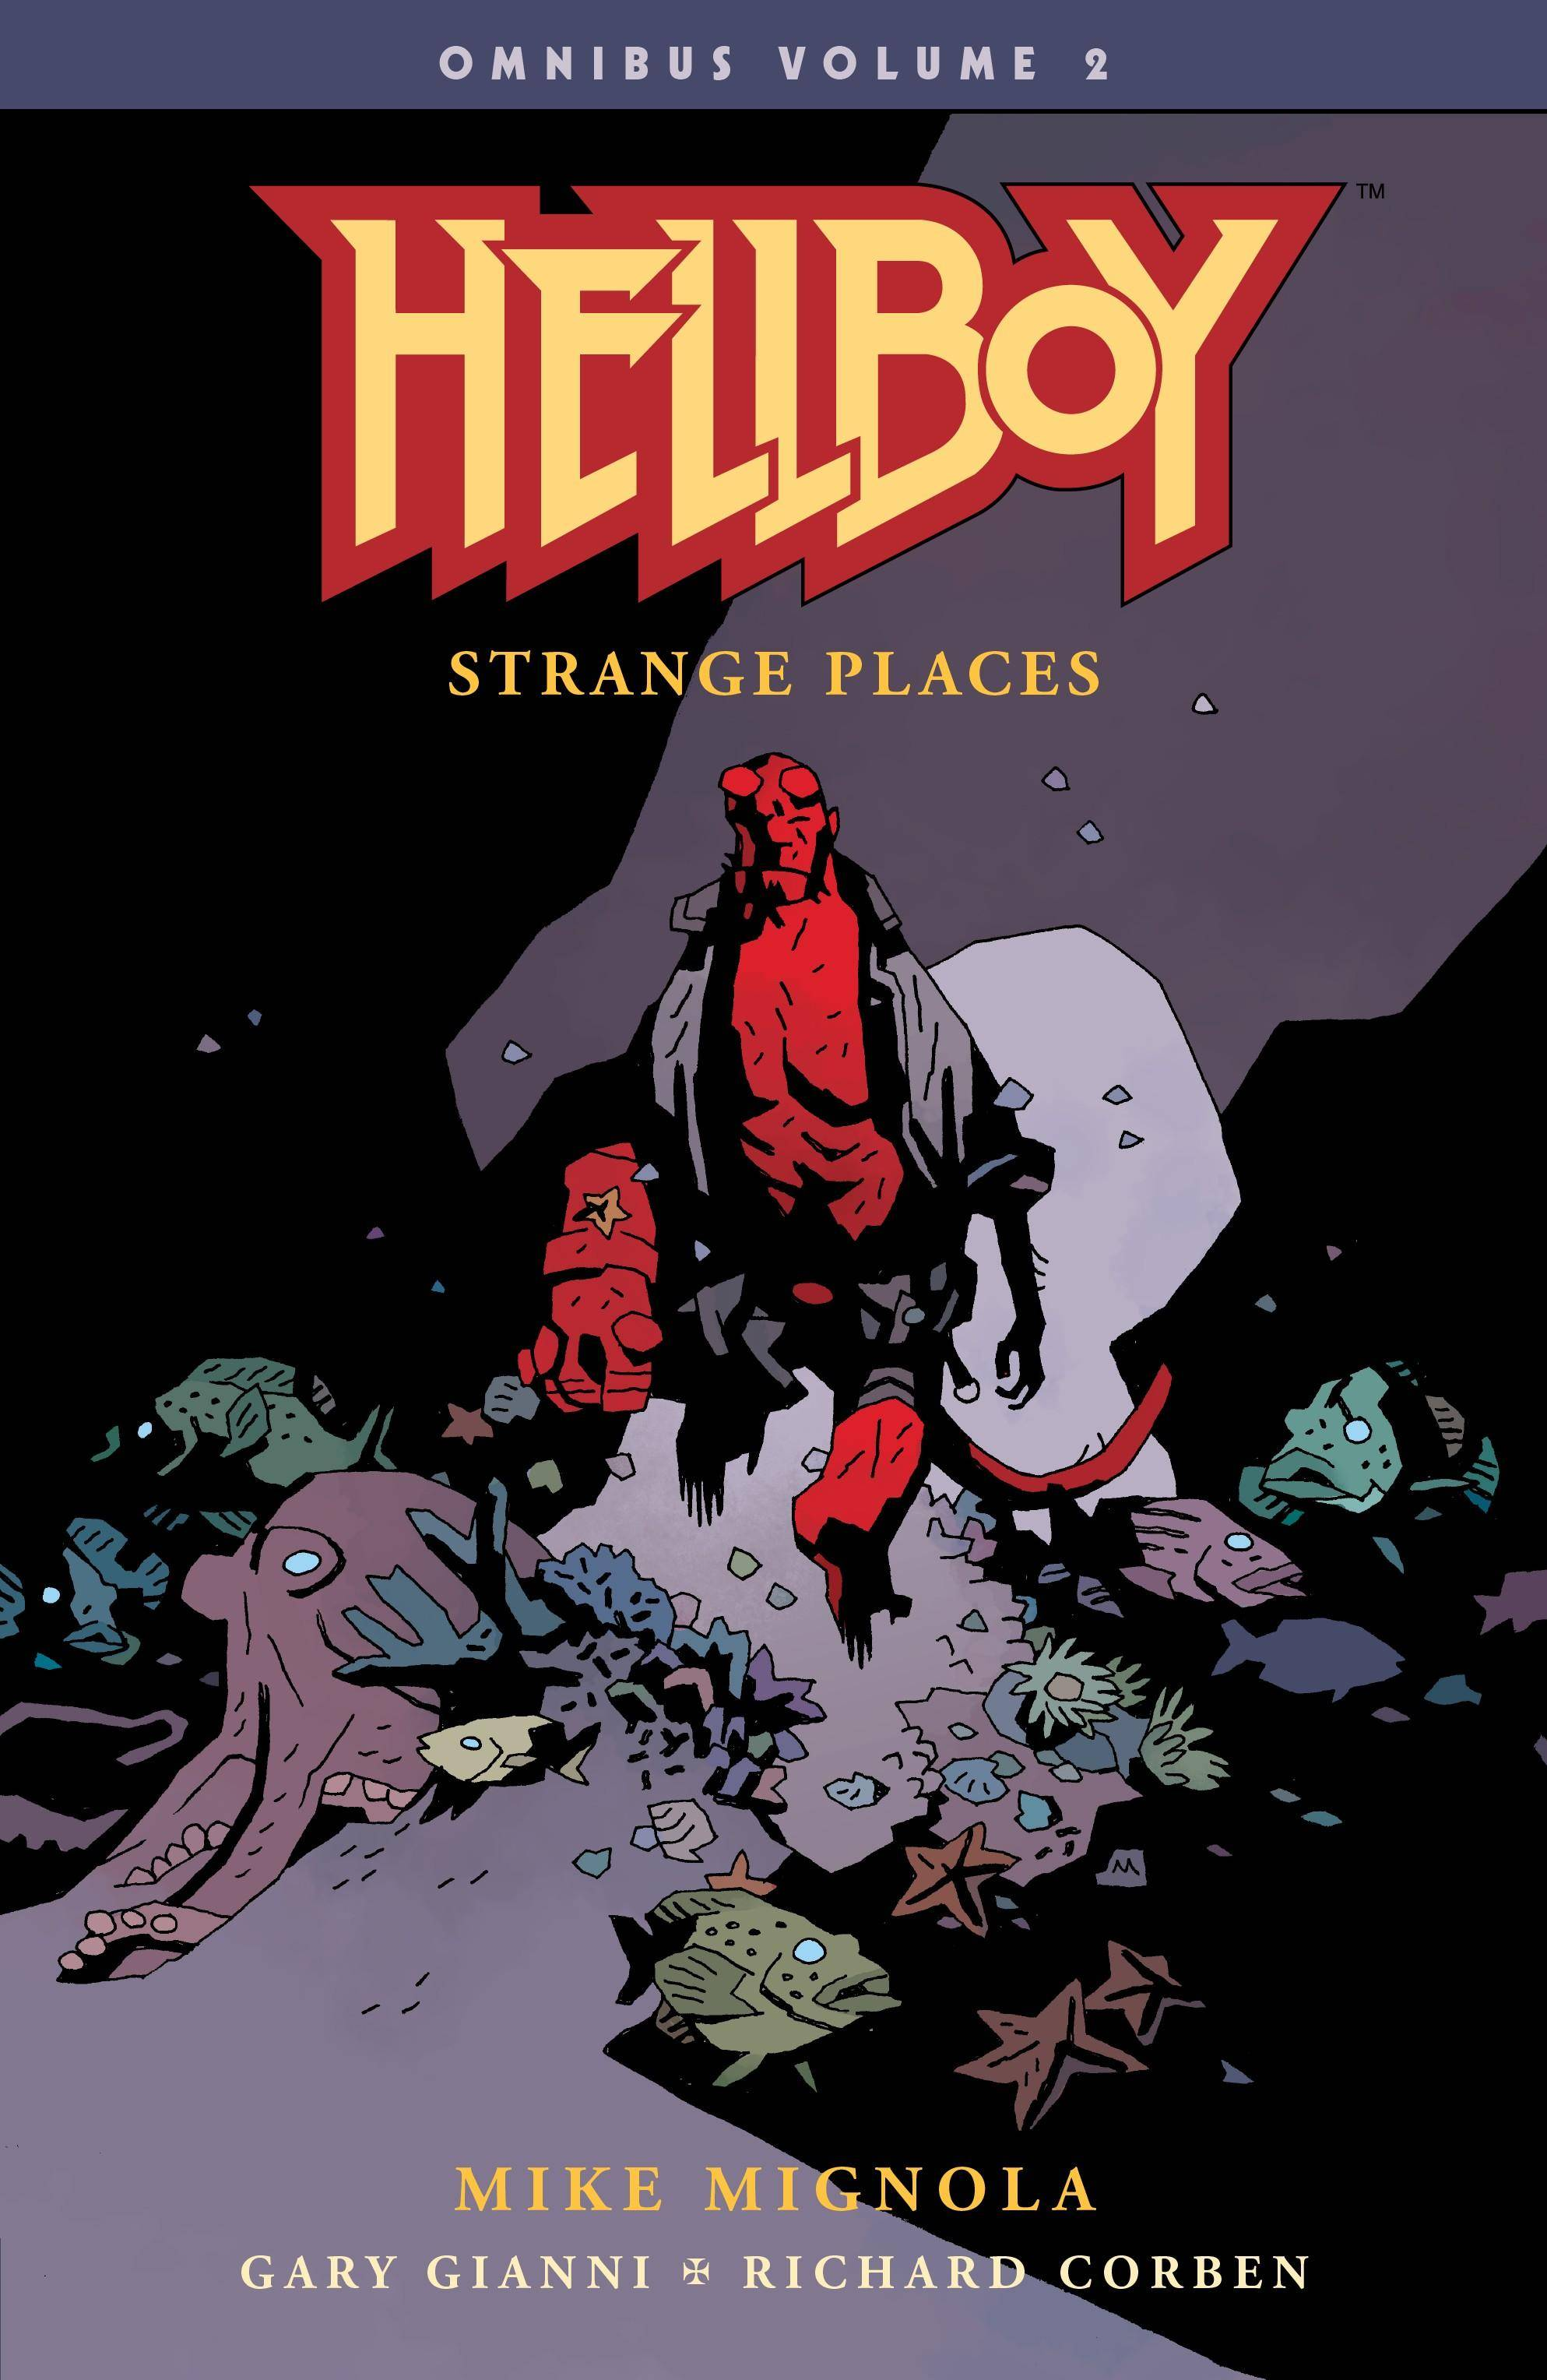 Hellboy Omnibus v02 - Strange Places (2018) (digital) (Son of Ultron-Empire)